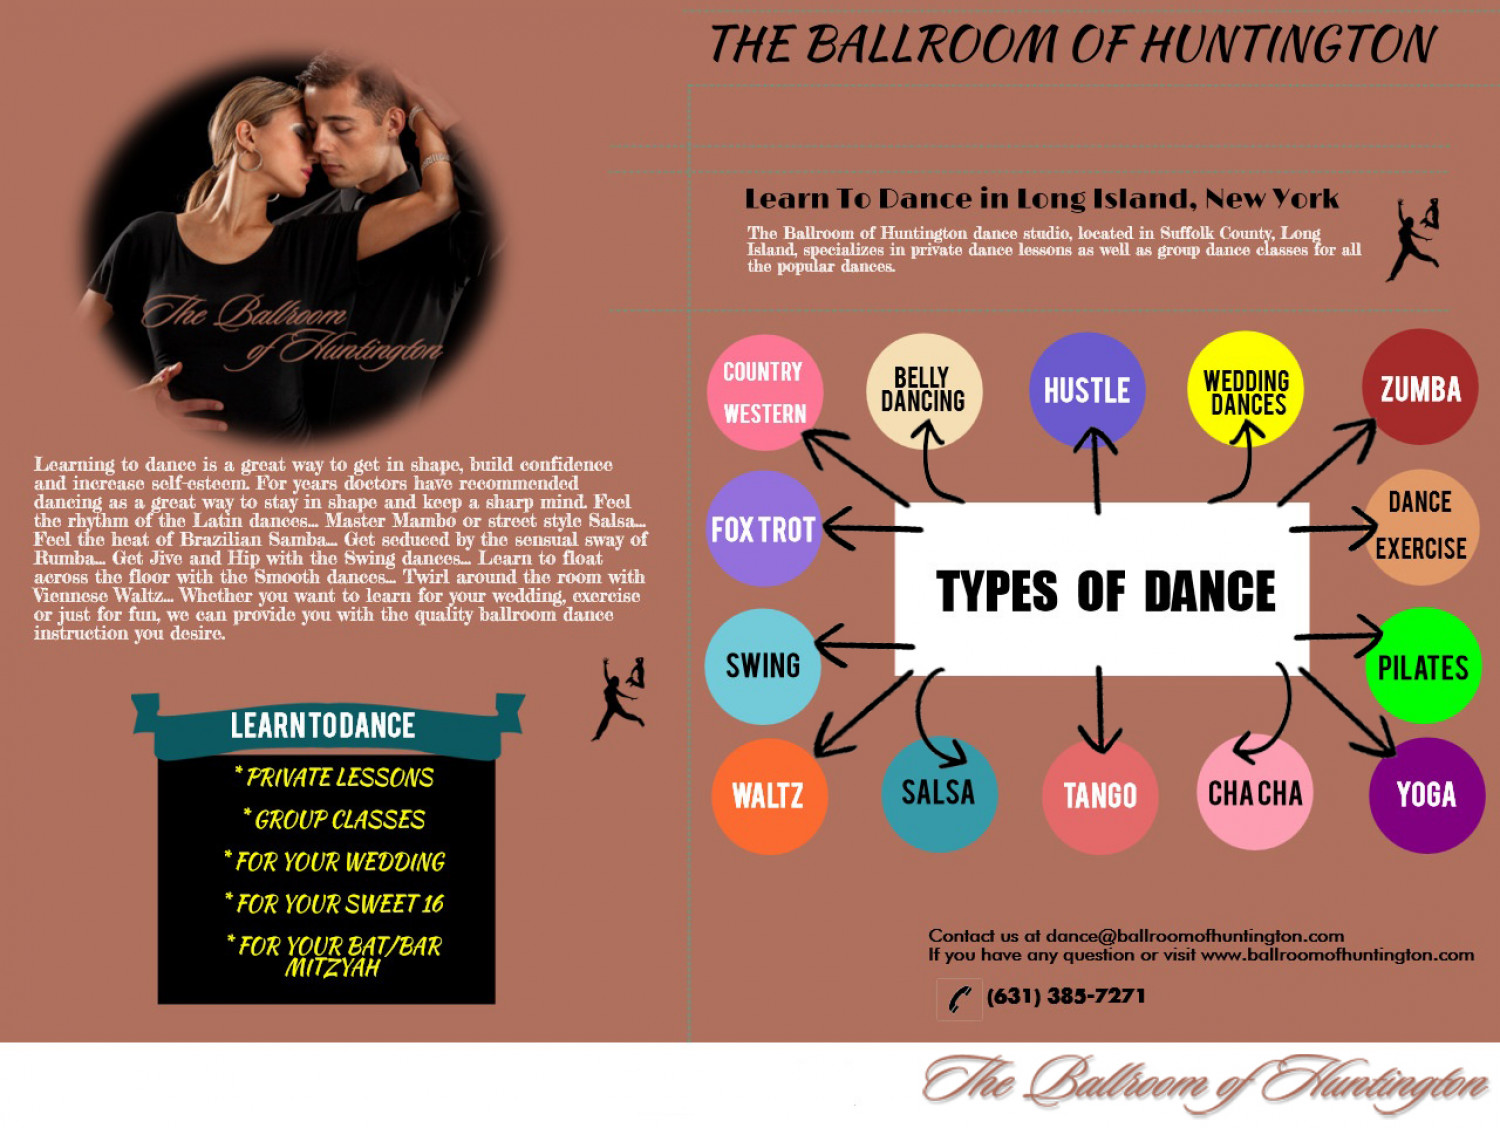 Choose Ballroom of Huntington to Learn All Types of Ballroom Dancing Infographic